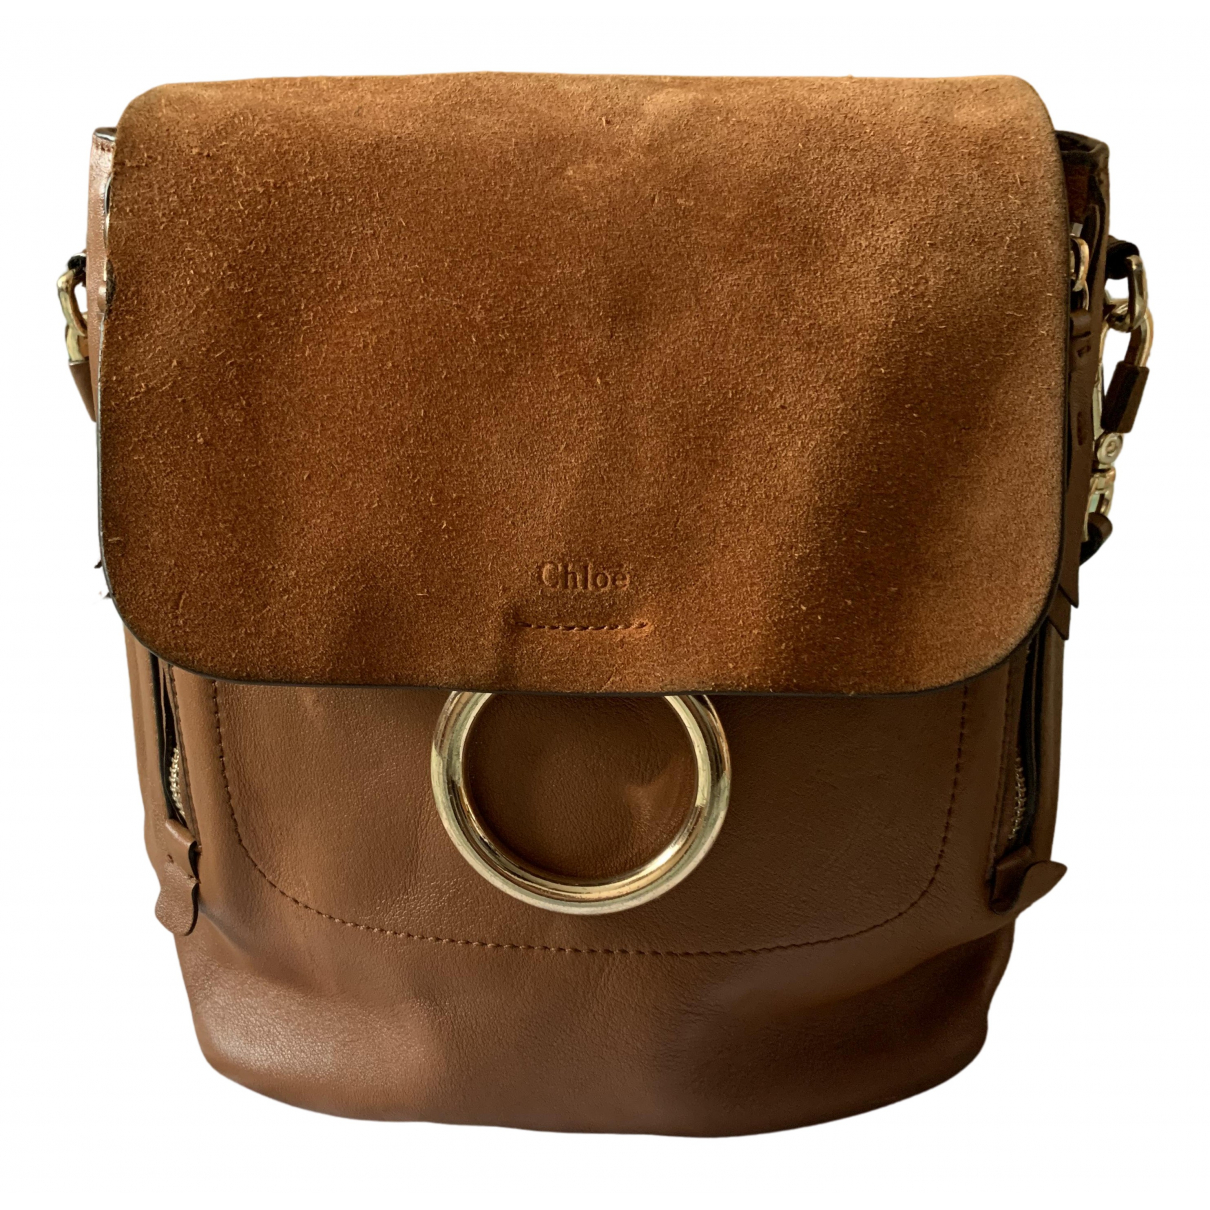 Chloé Faye Brown Leather backpack for Women N